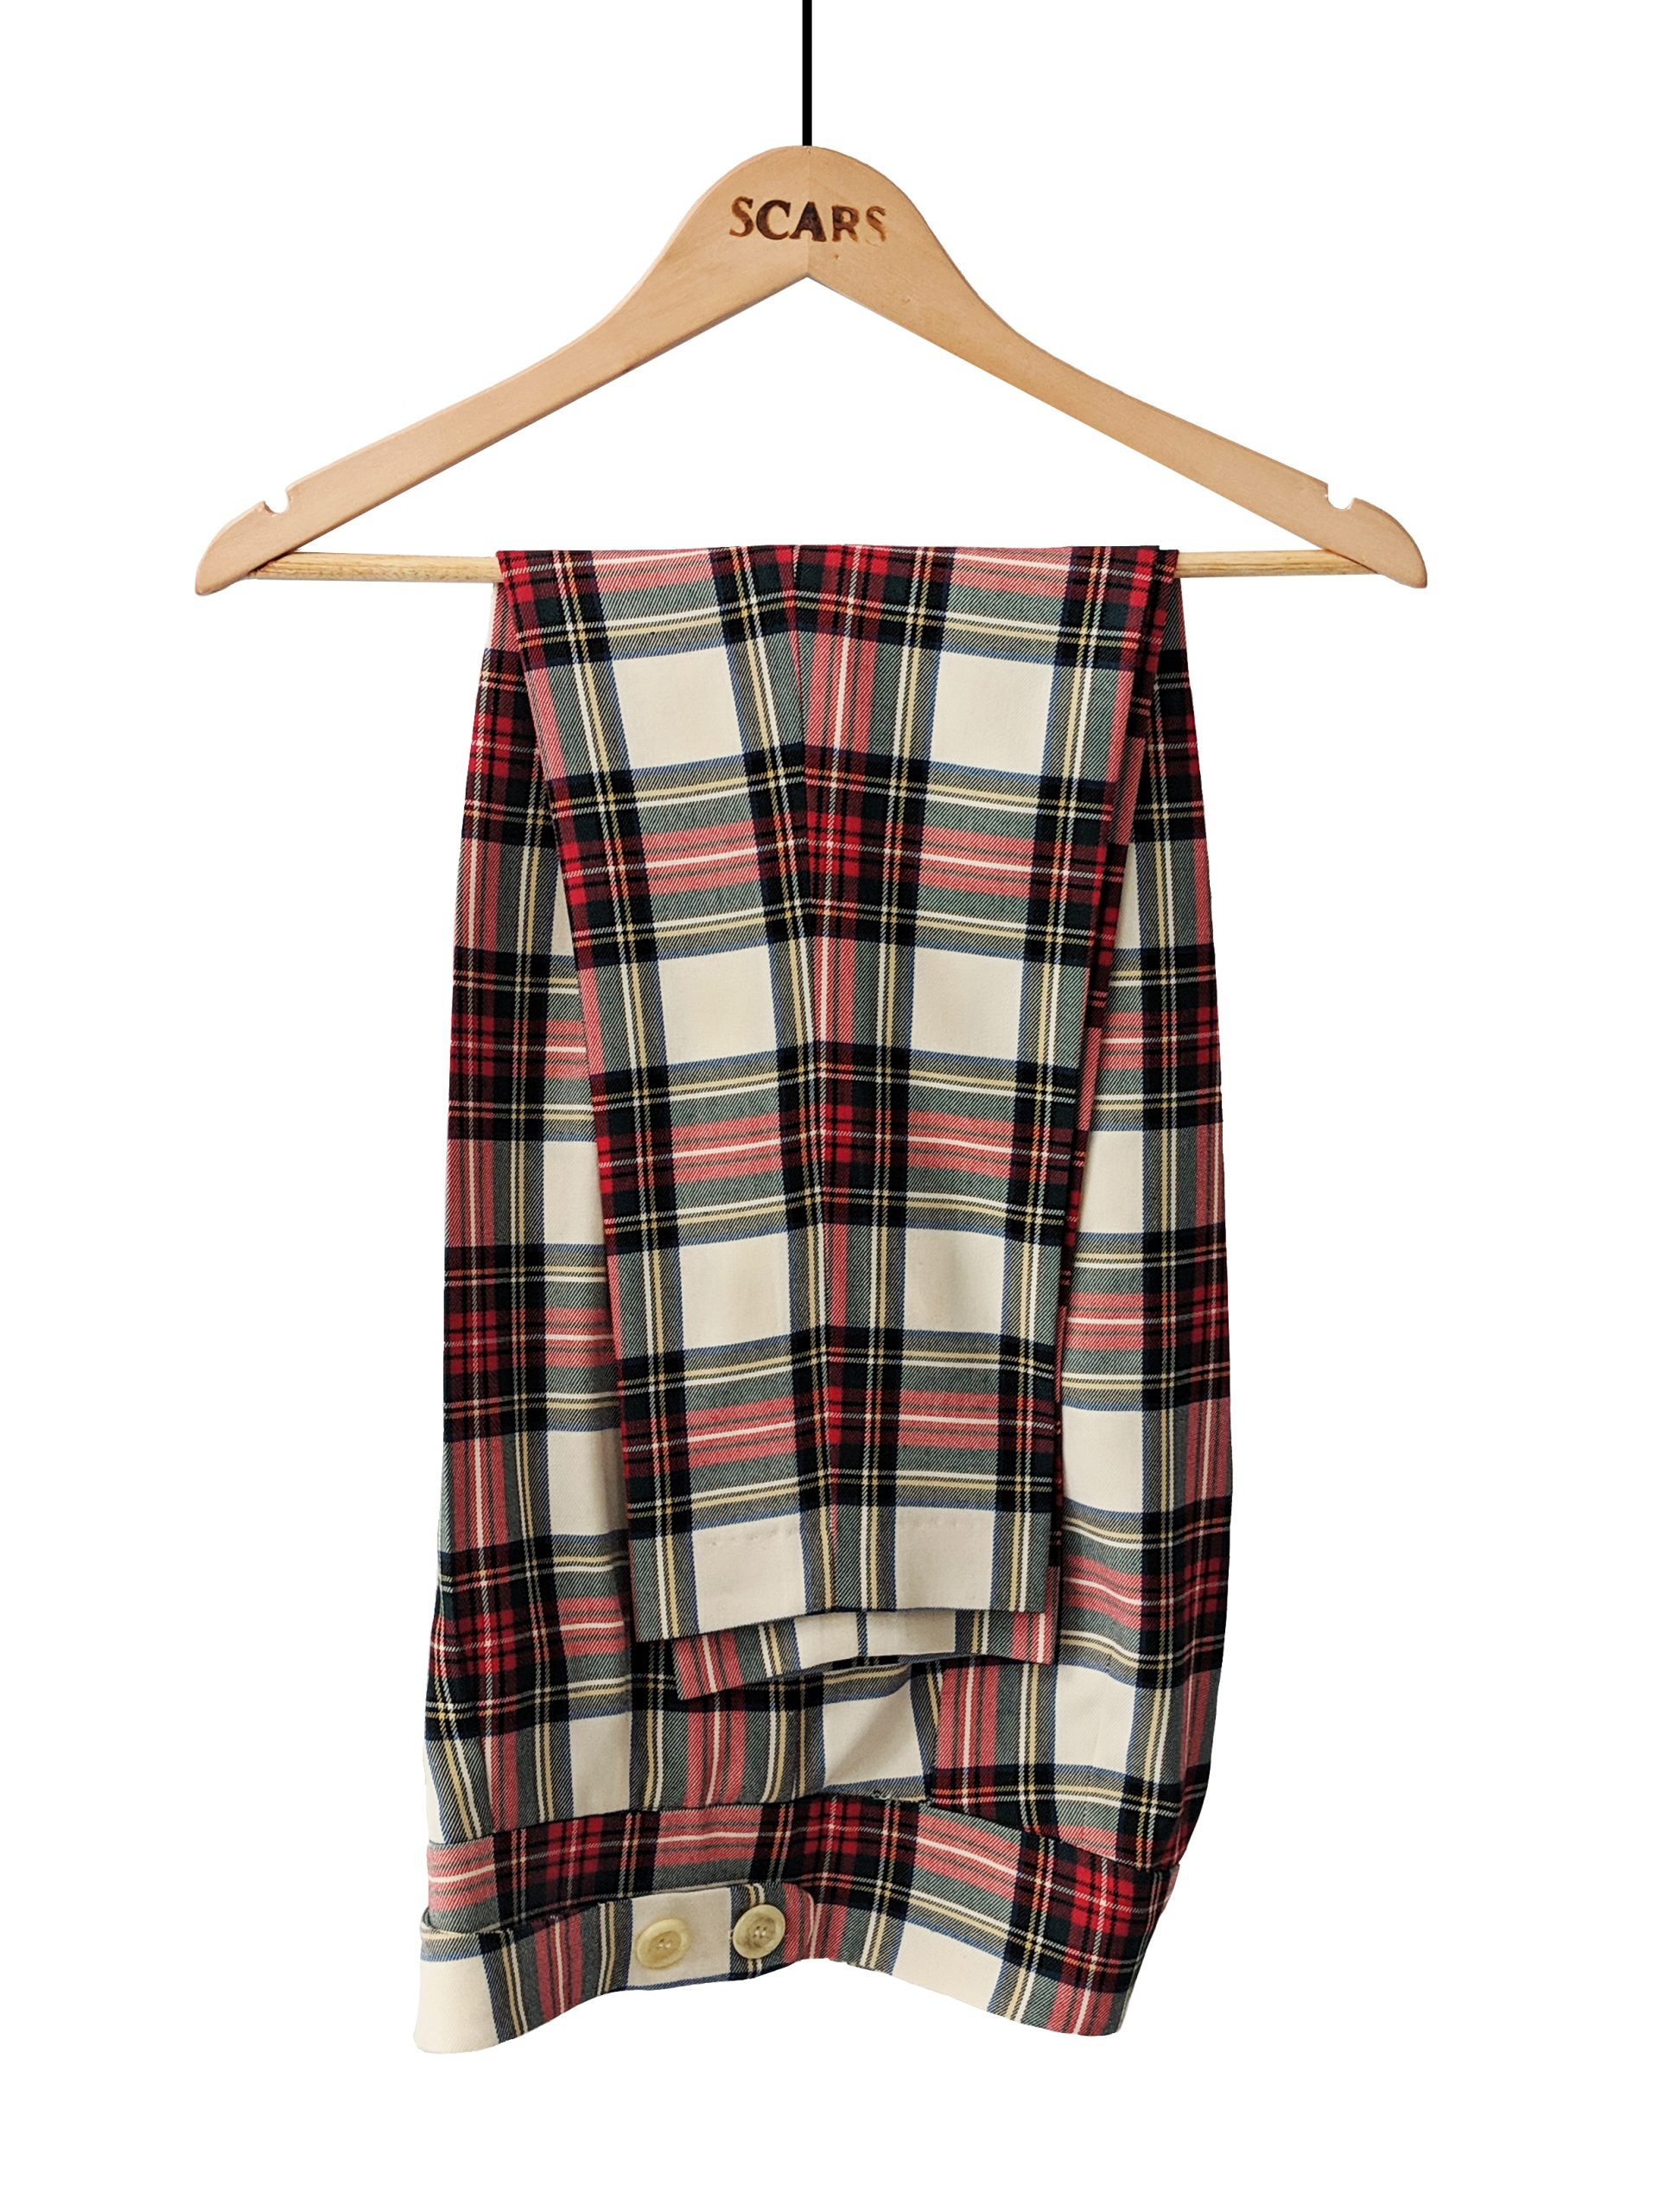 PANTALONES RED CHECKERED SCARS